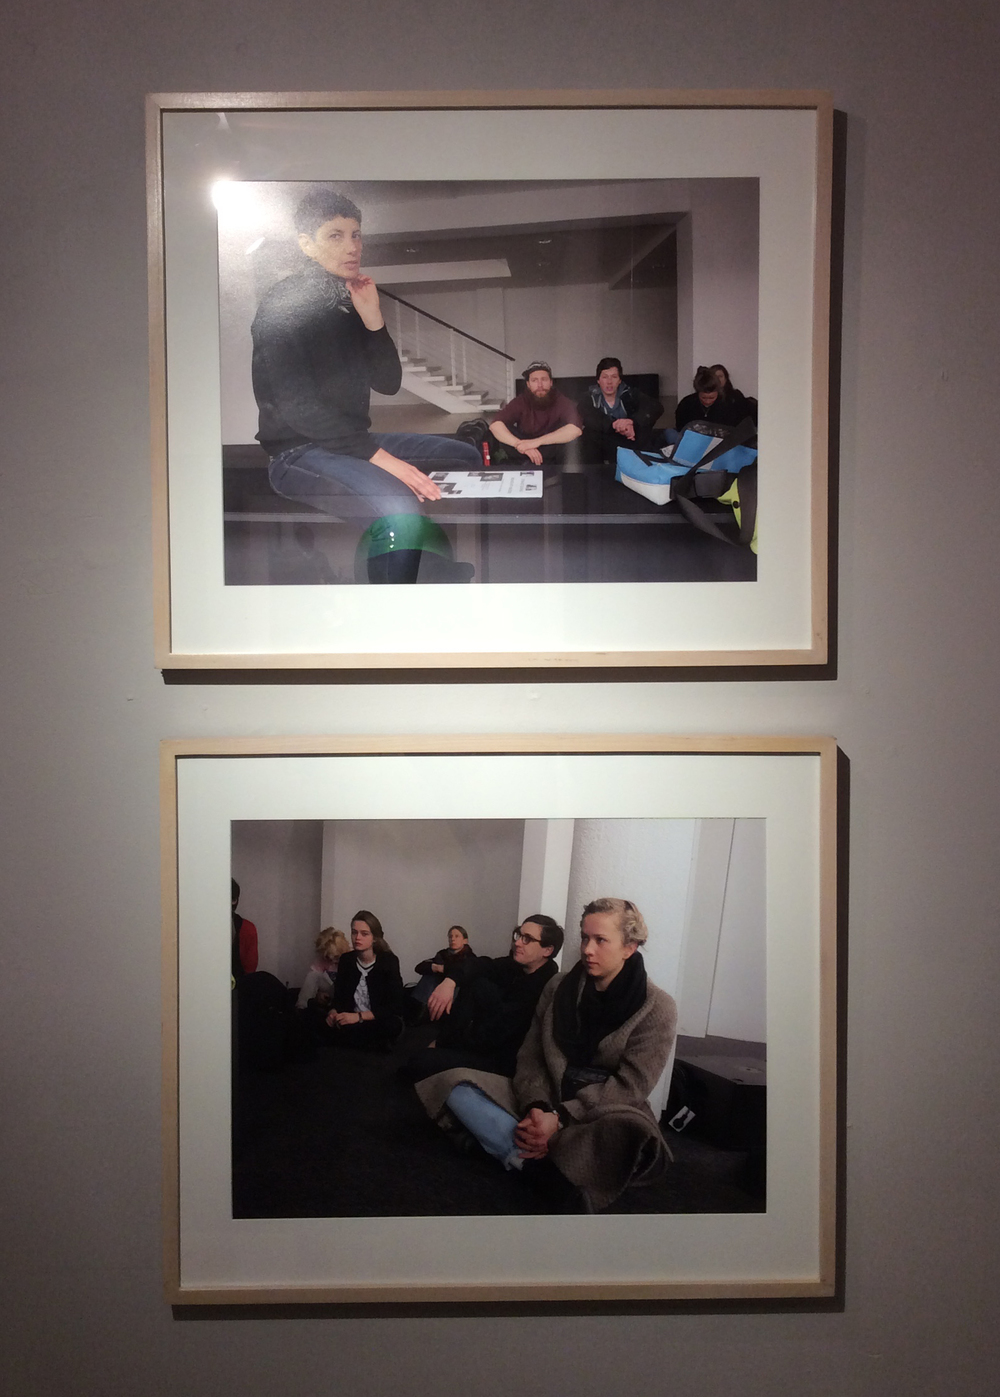 "Rainer Ganahl; S/L, Yael Bartana, Yael Bartana, Capitainpetzel, Berlin 2/27/2015;   4 photographs, 20"" x 24"", Edition of 4; 2015"